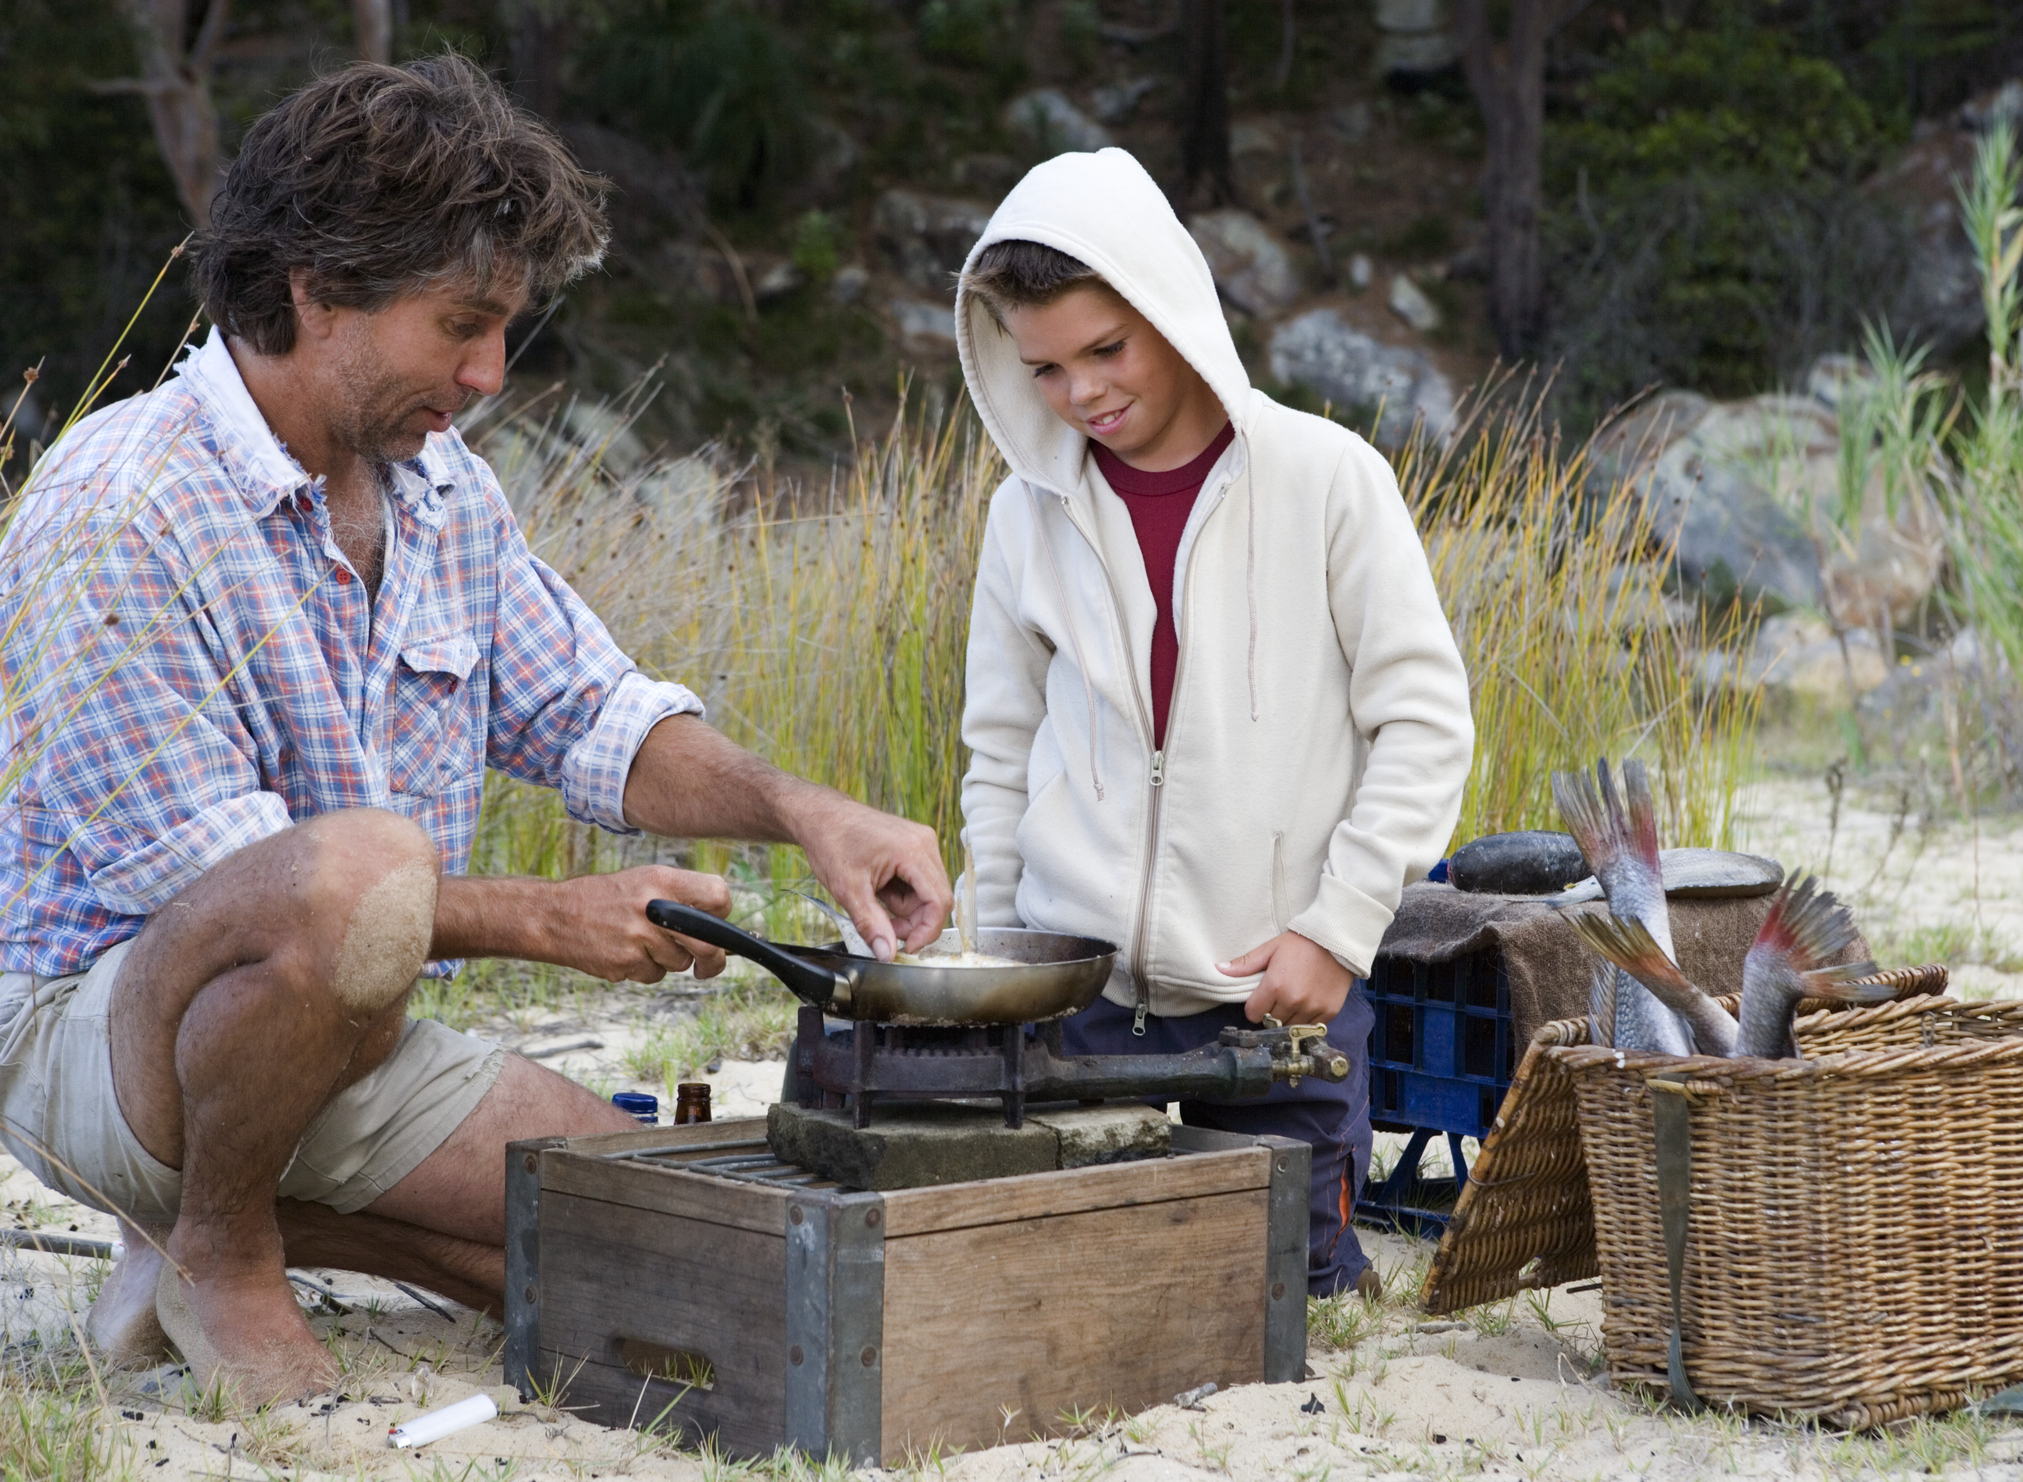 Dad teaching his son how to cook in the bush